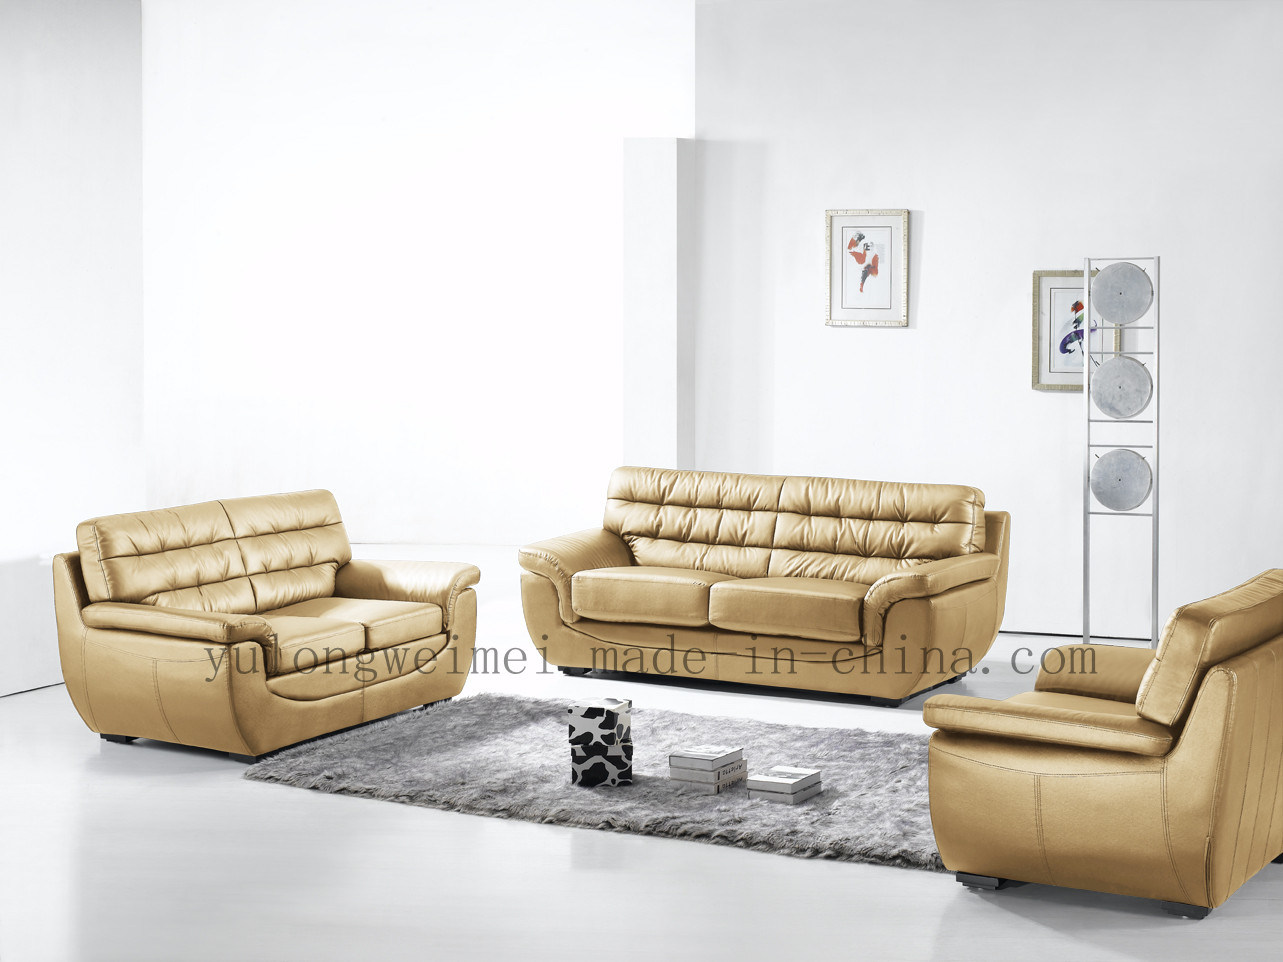 What Makes Contemporary Furnishings So Popular Mental Multivitamin